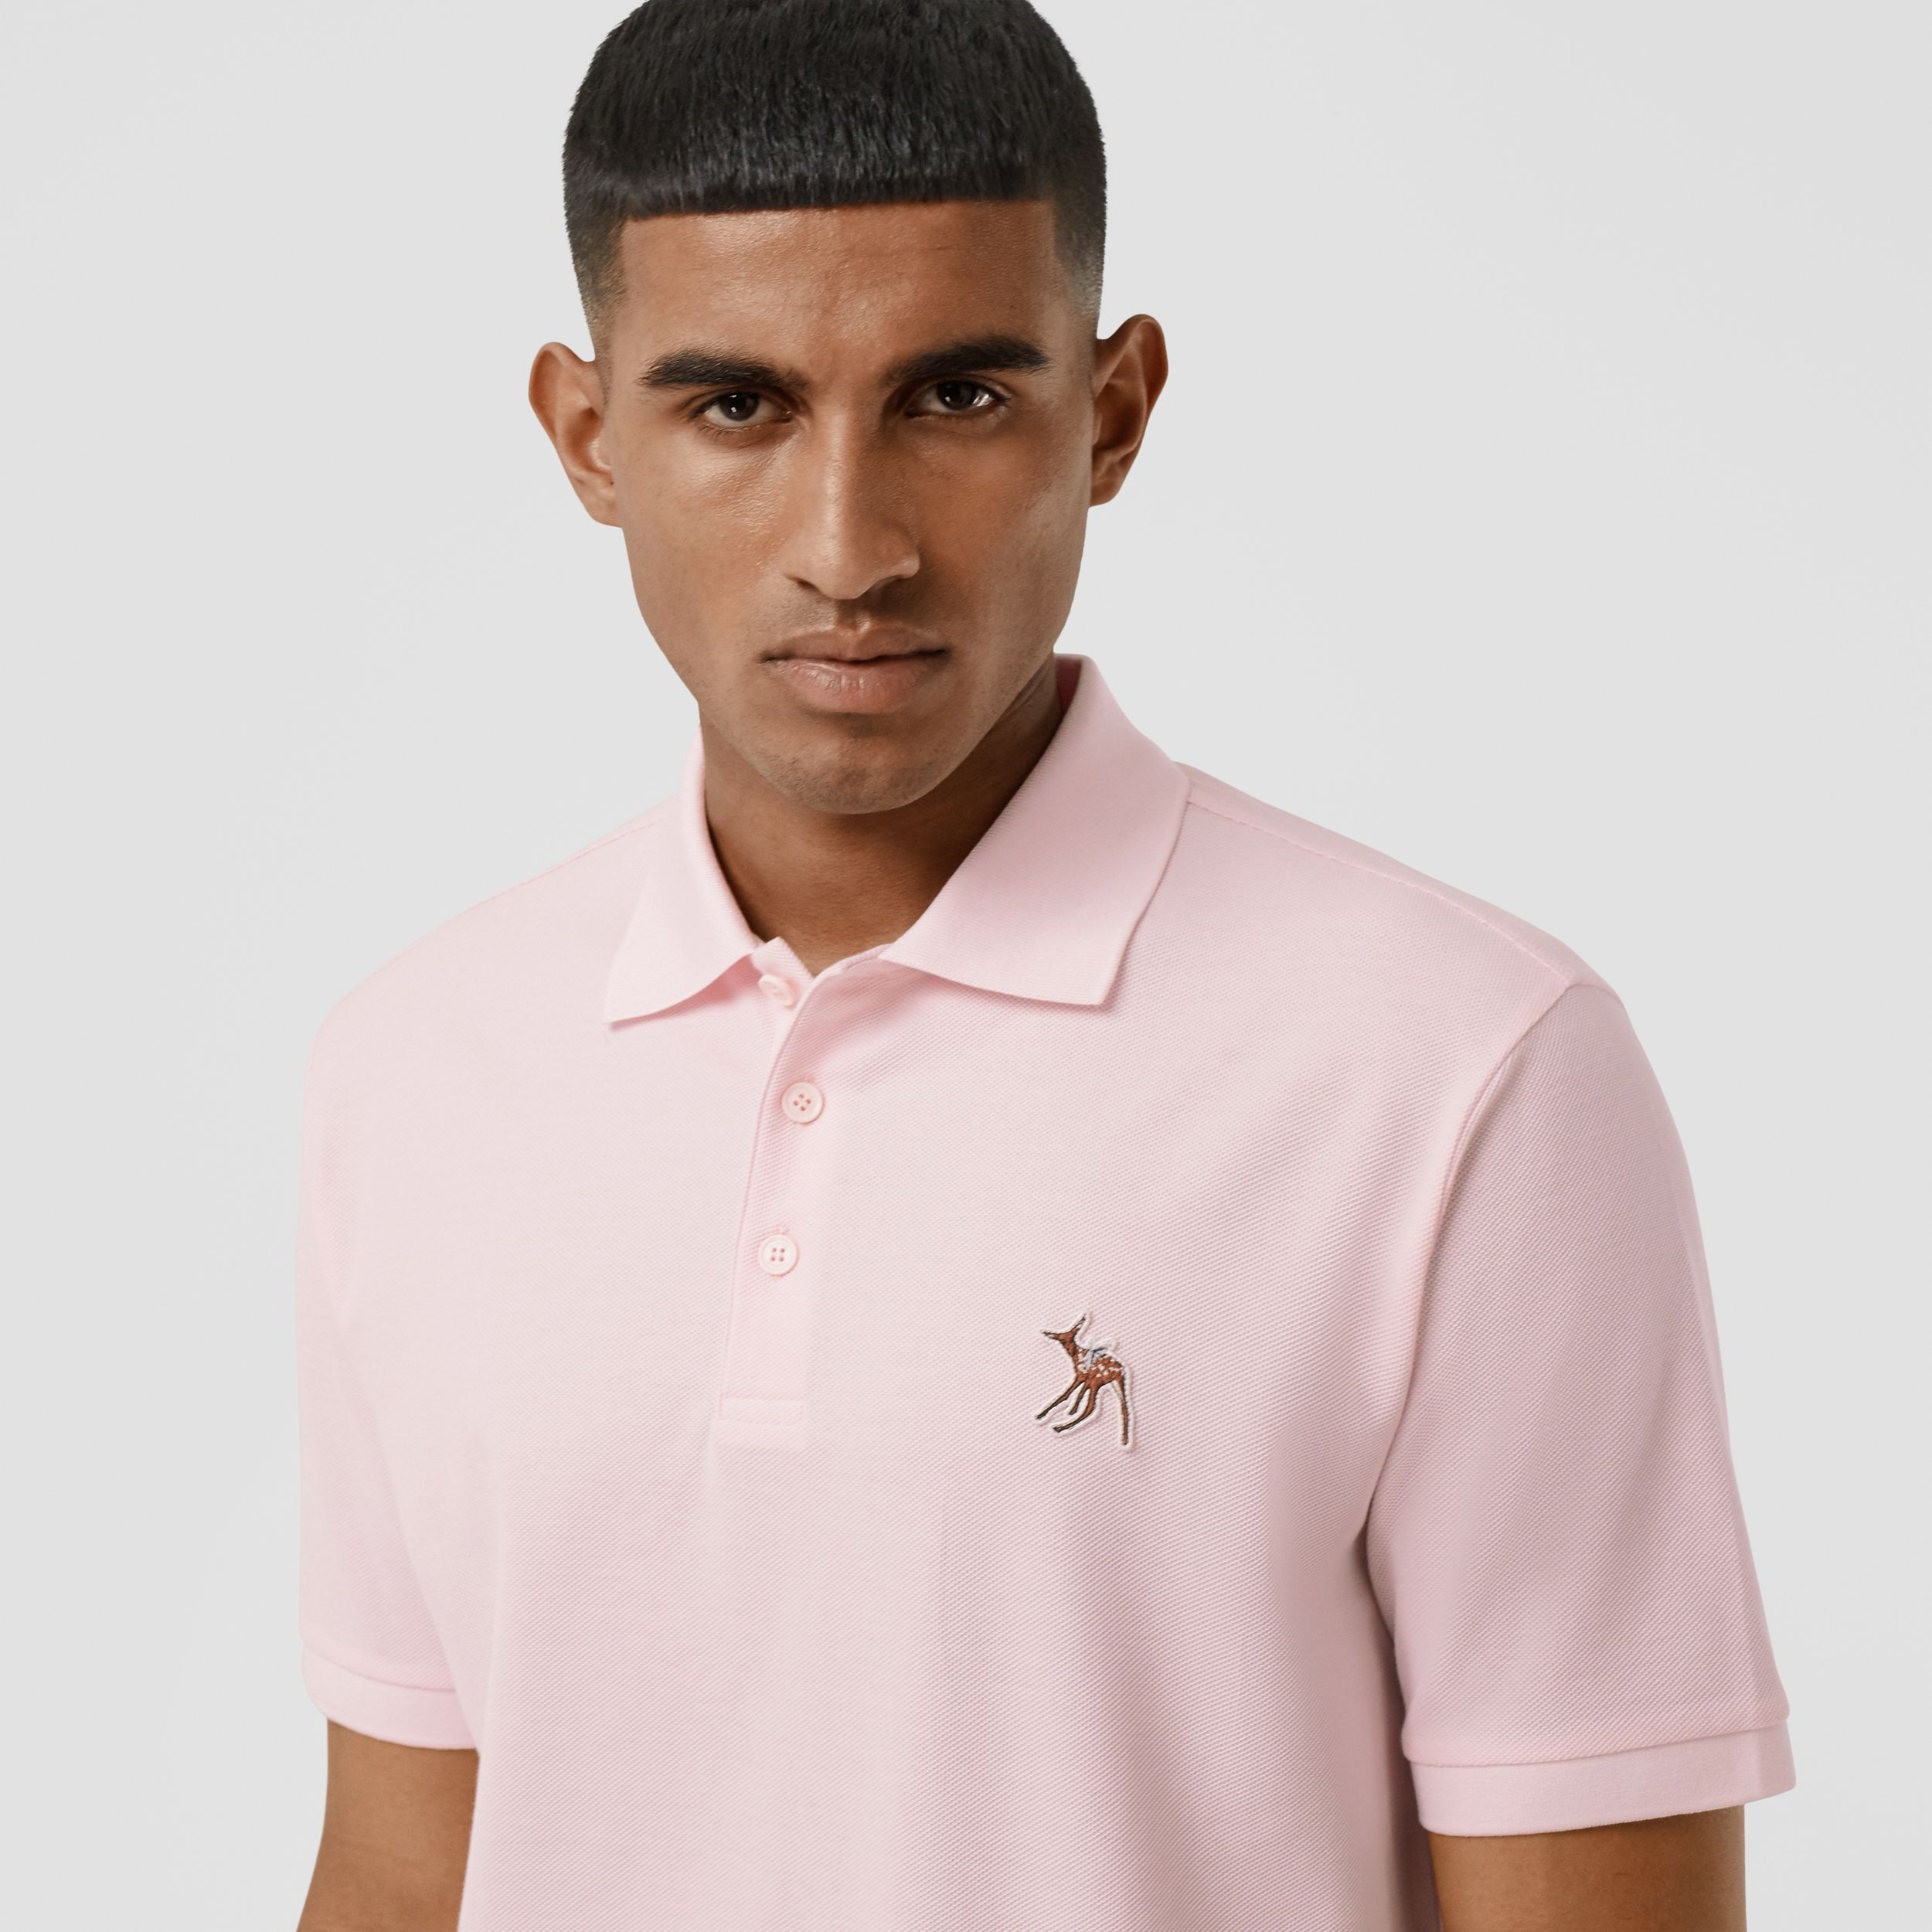 Deer Appliqué Cotton Piqué Polo Shirt in Alabaster Pink - Men | Burberry - 2